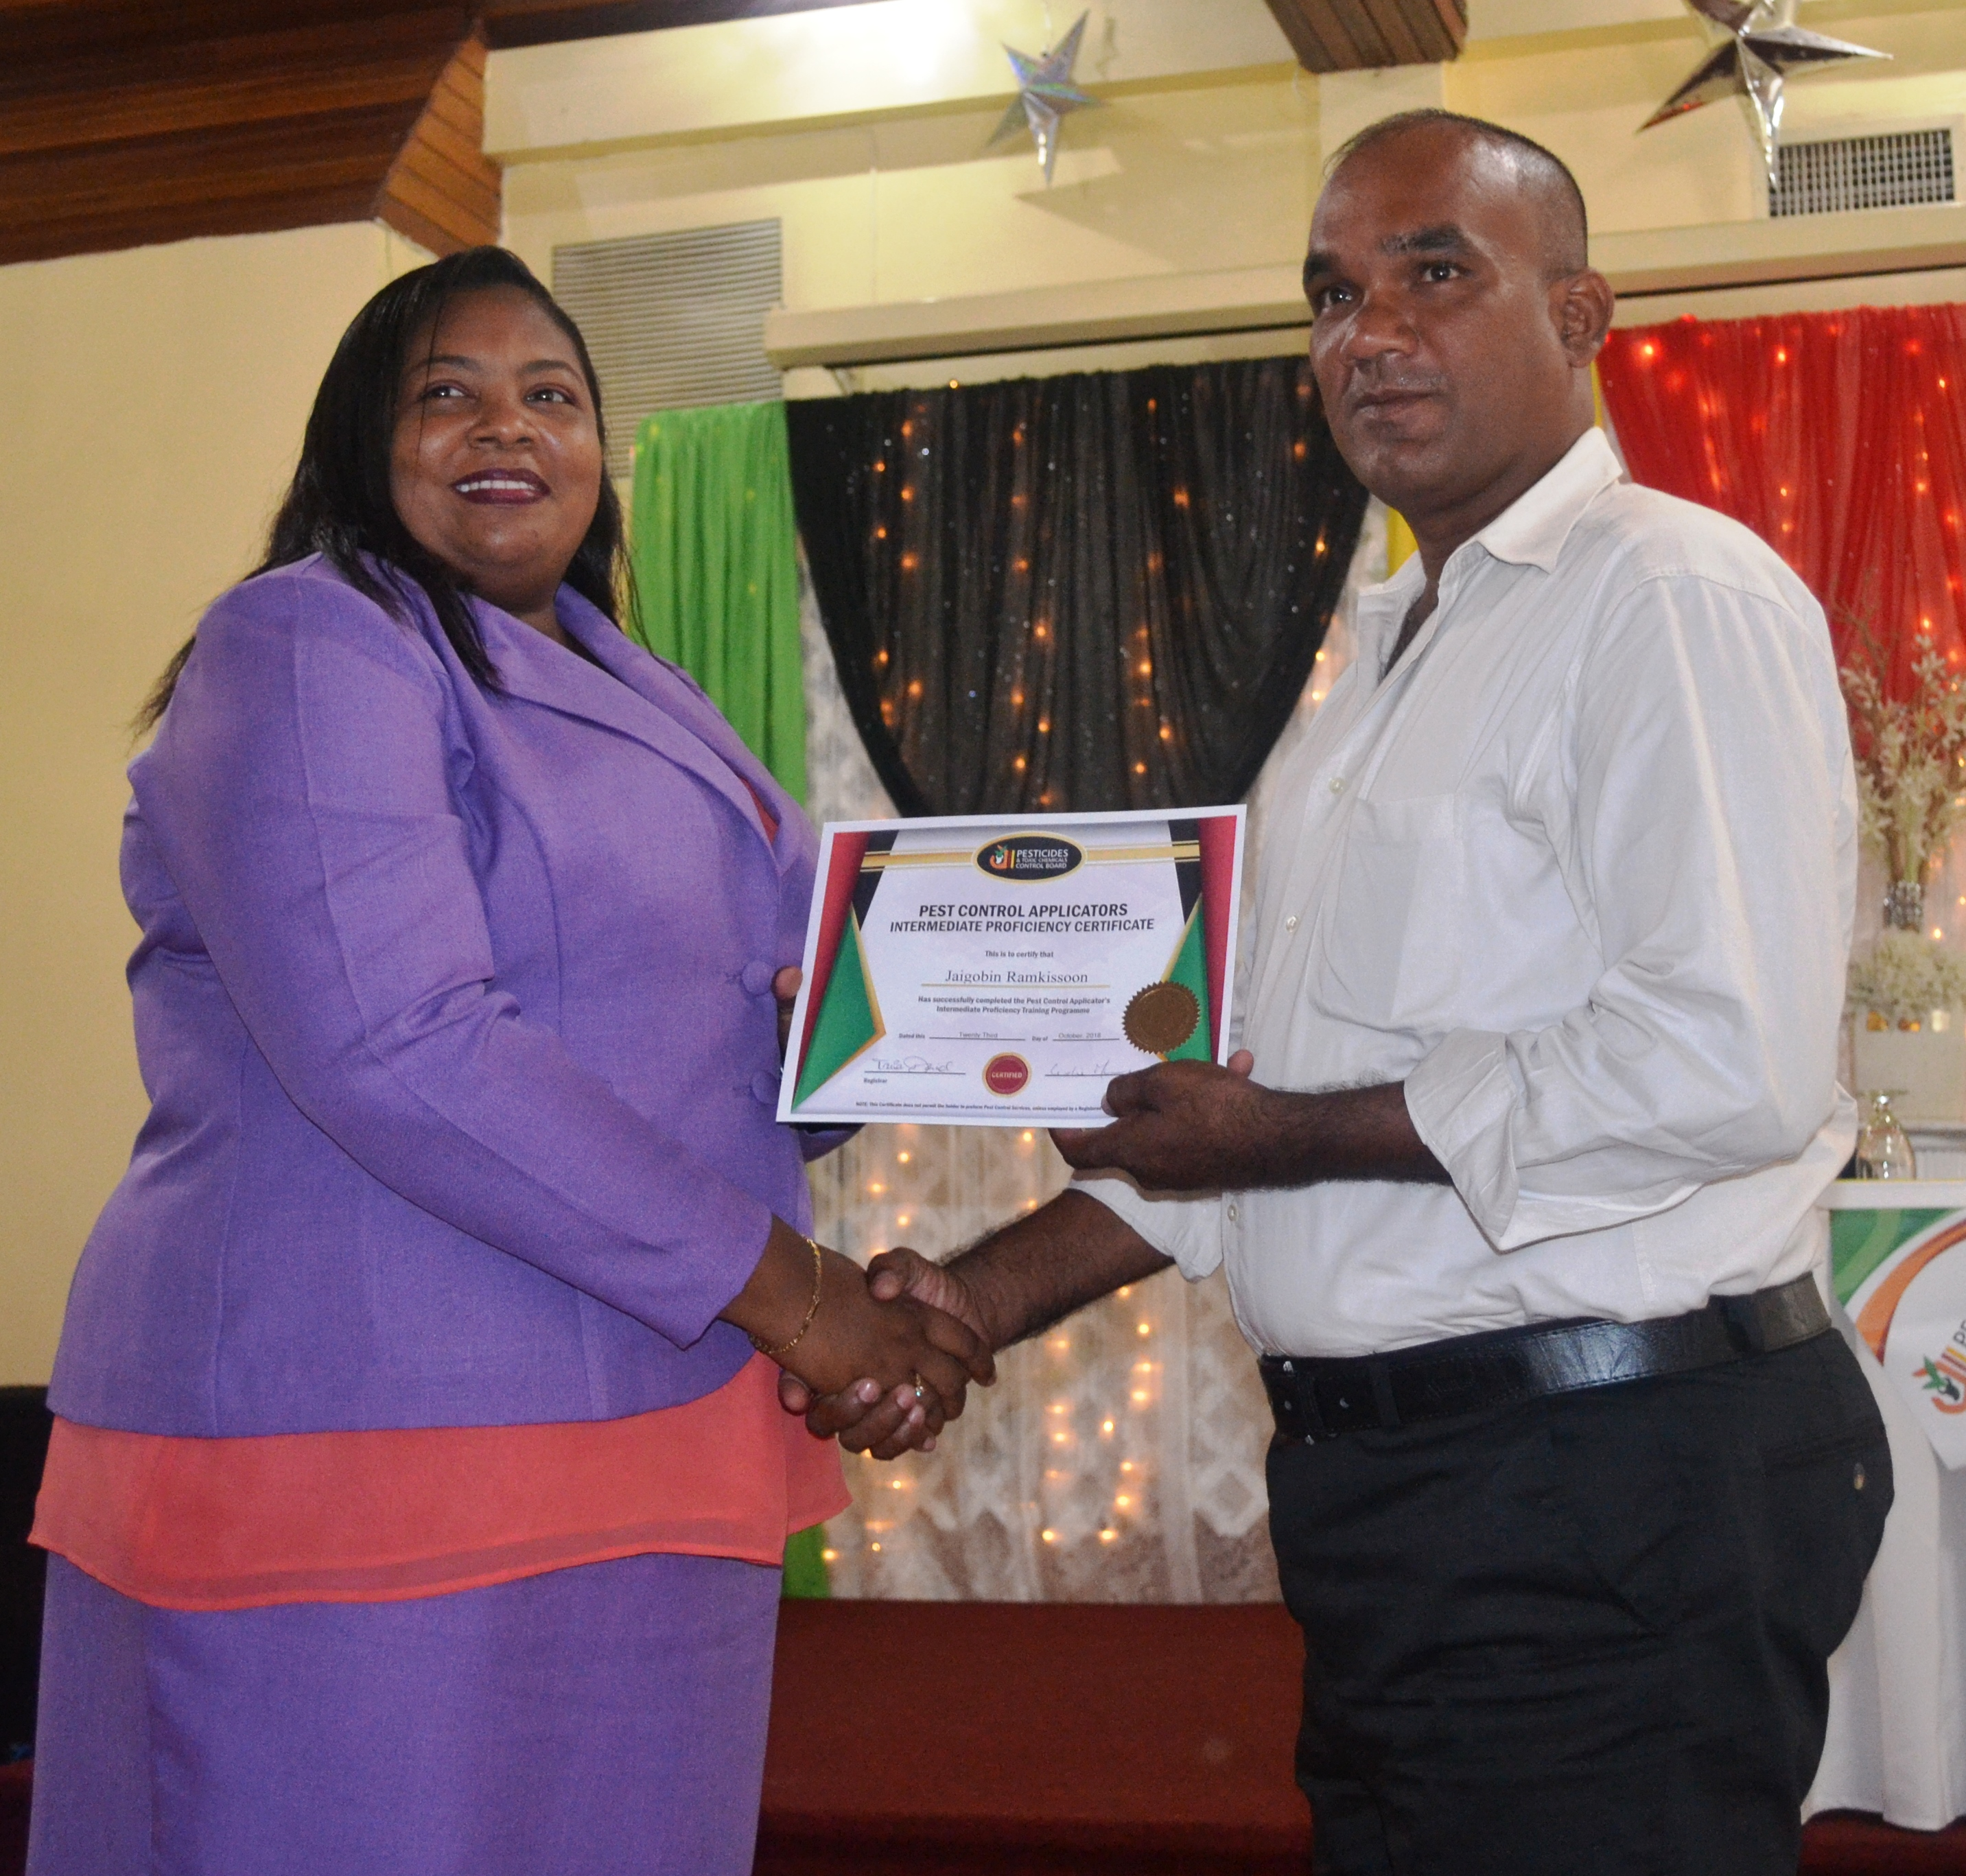 One of the graduates recieving their certificate from PTCCB Registrar, Trecia Garnath